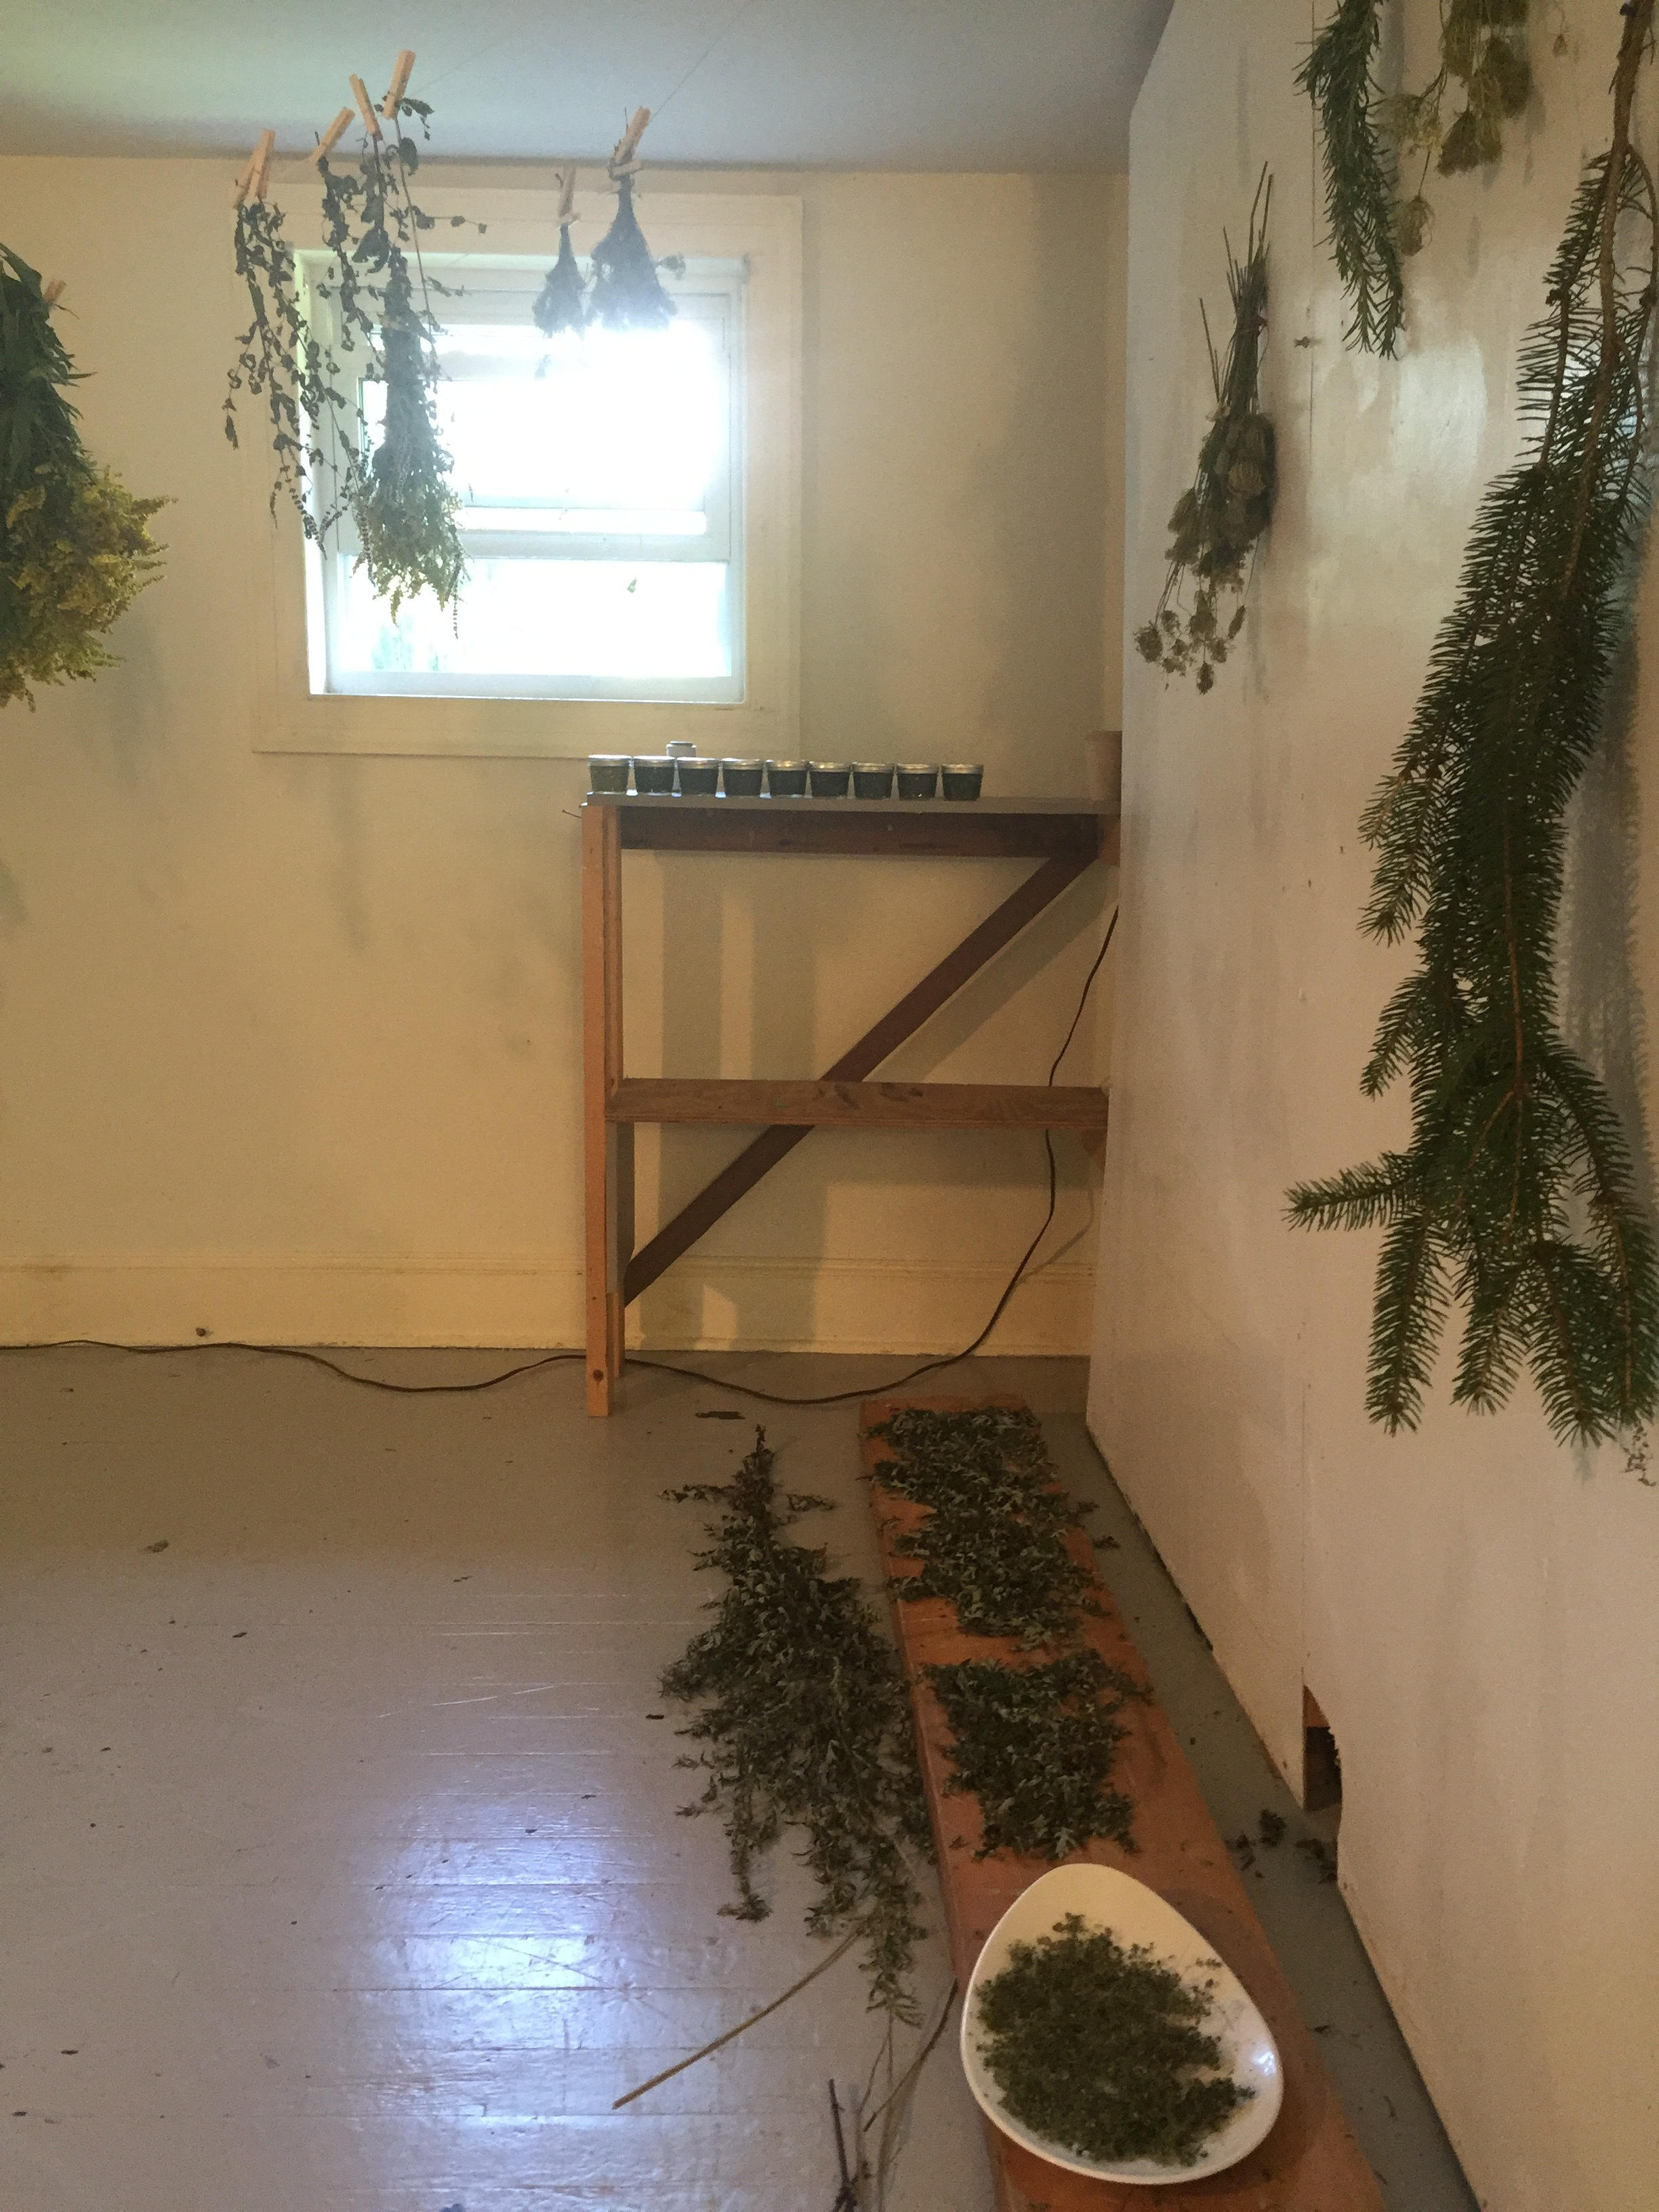 My studio at chaNorth where I collected, dried and then processed herbs into infused oils.